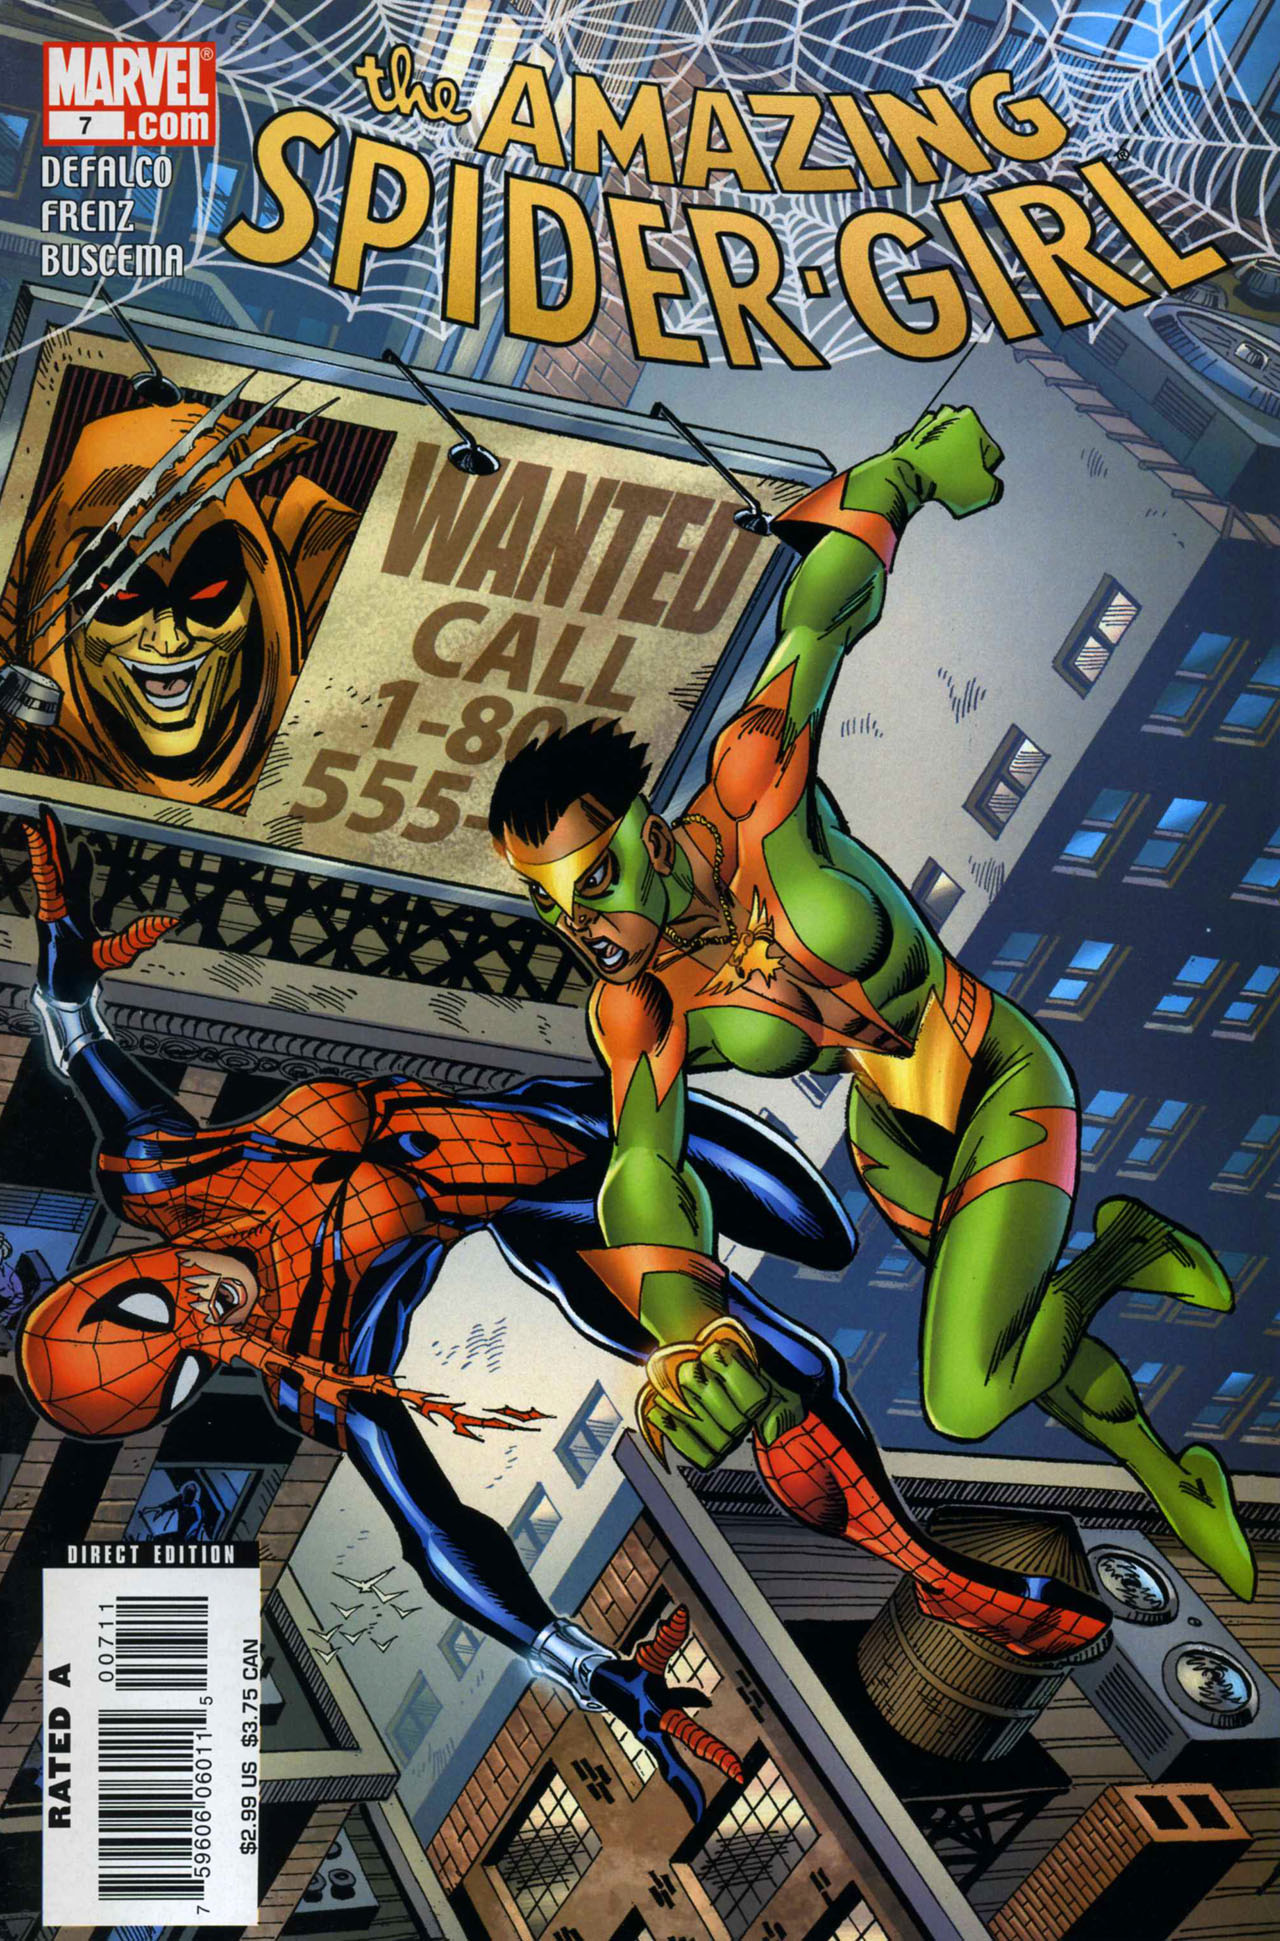 Read online Amazing Spider-Girl comic -  Issue #7 - 2